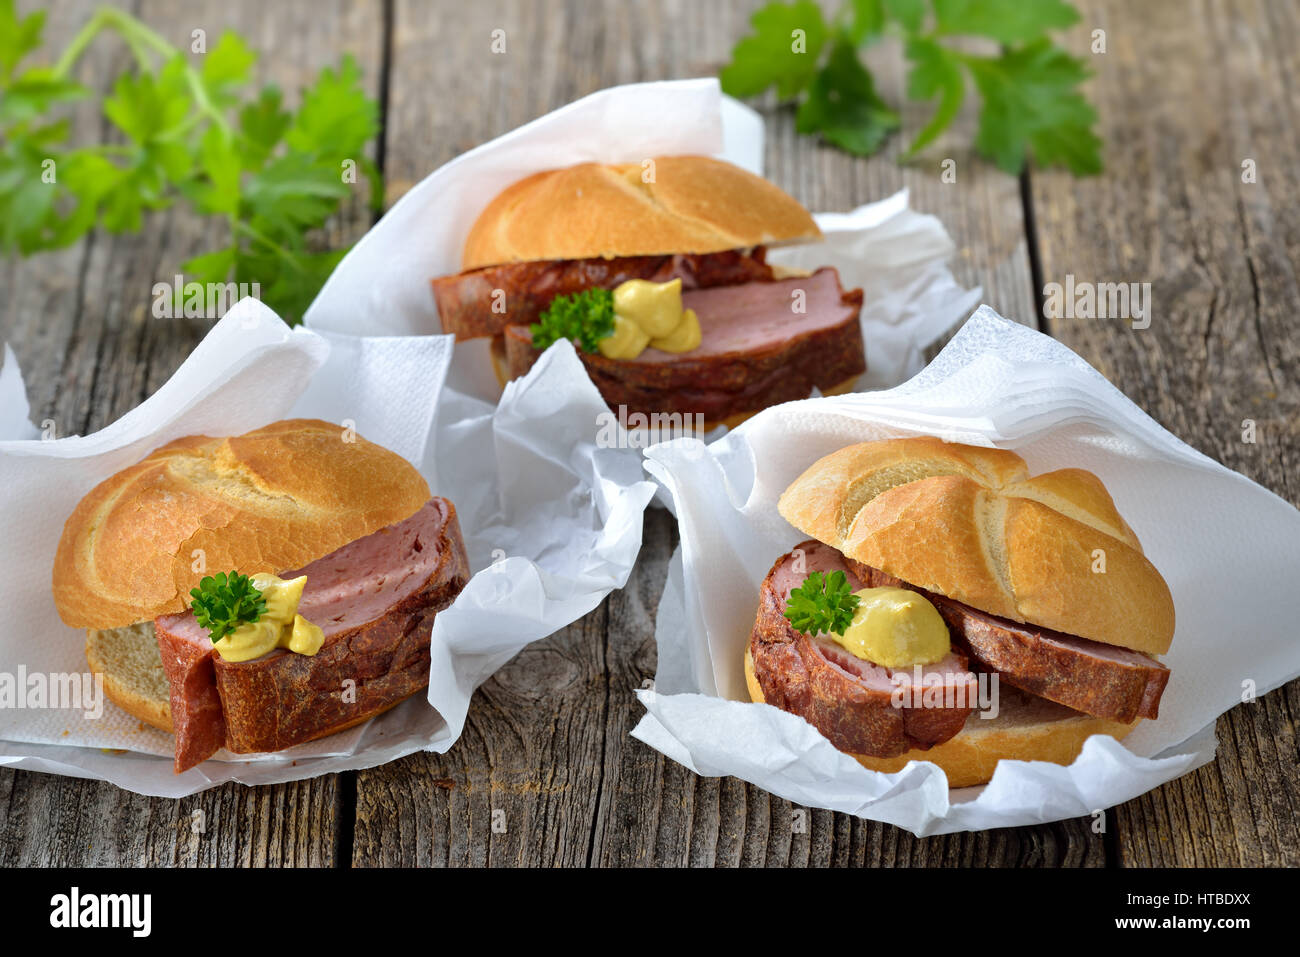 Bavarian takeaway food: Three rolls with baked meat loaf and mustard on wrapping paper with a napkin Stock Photo